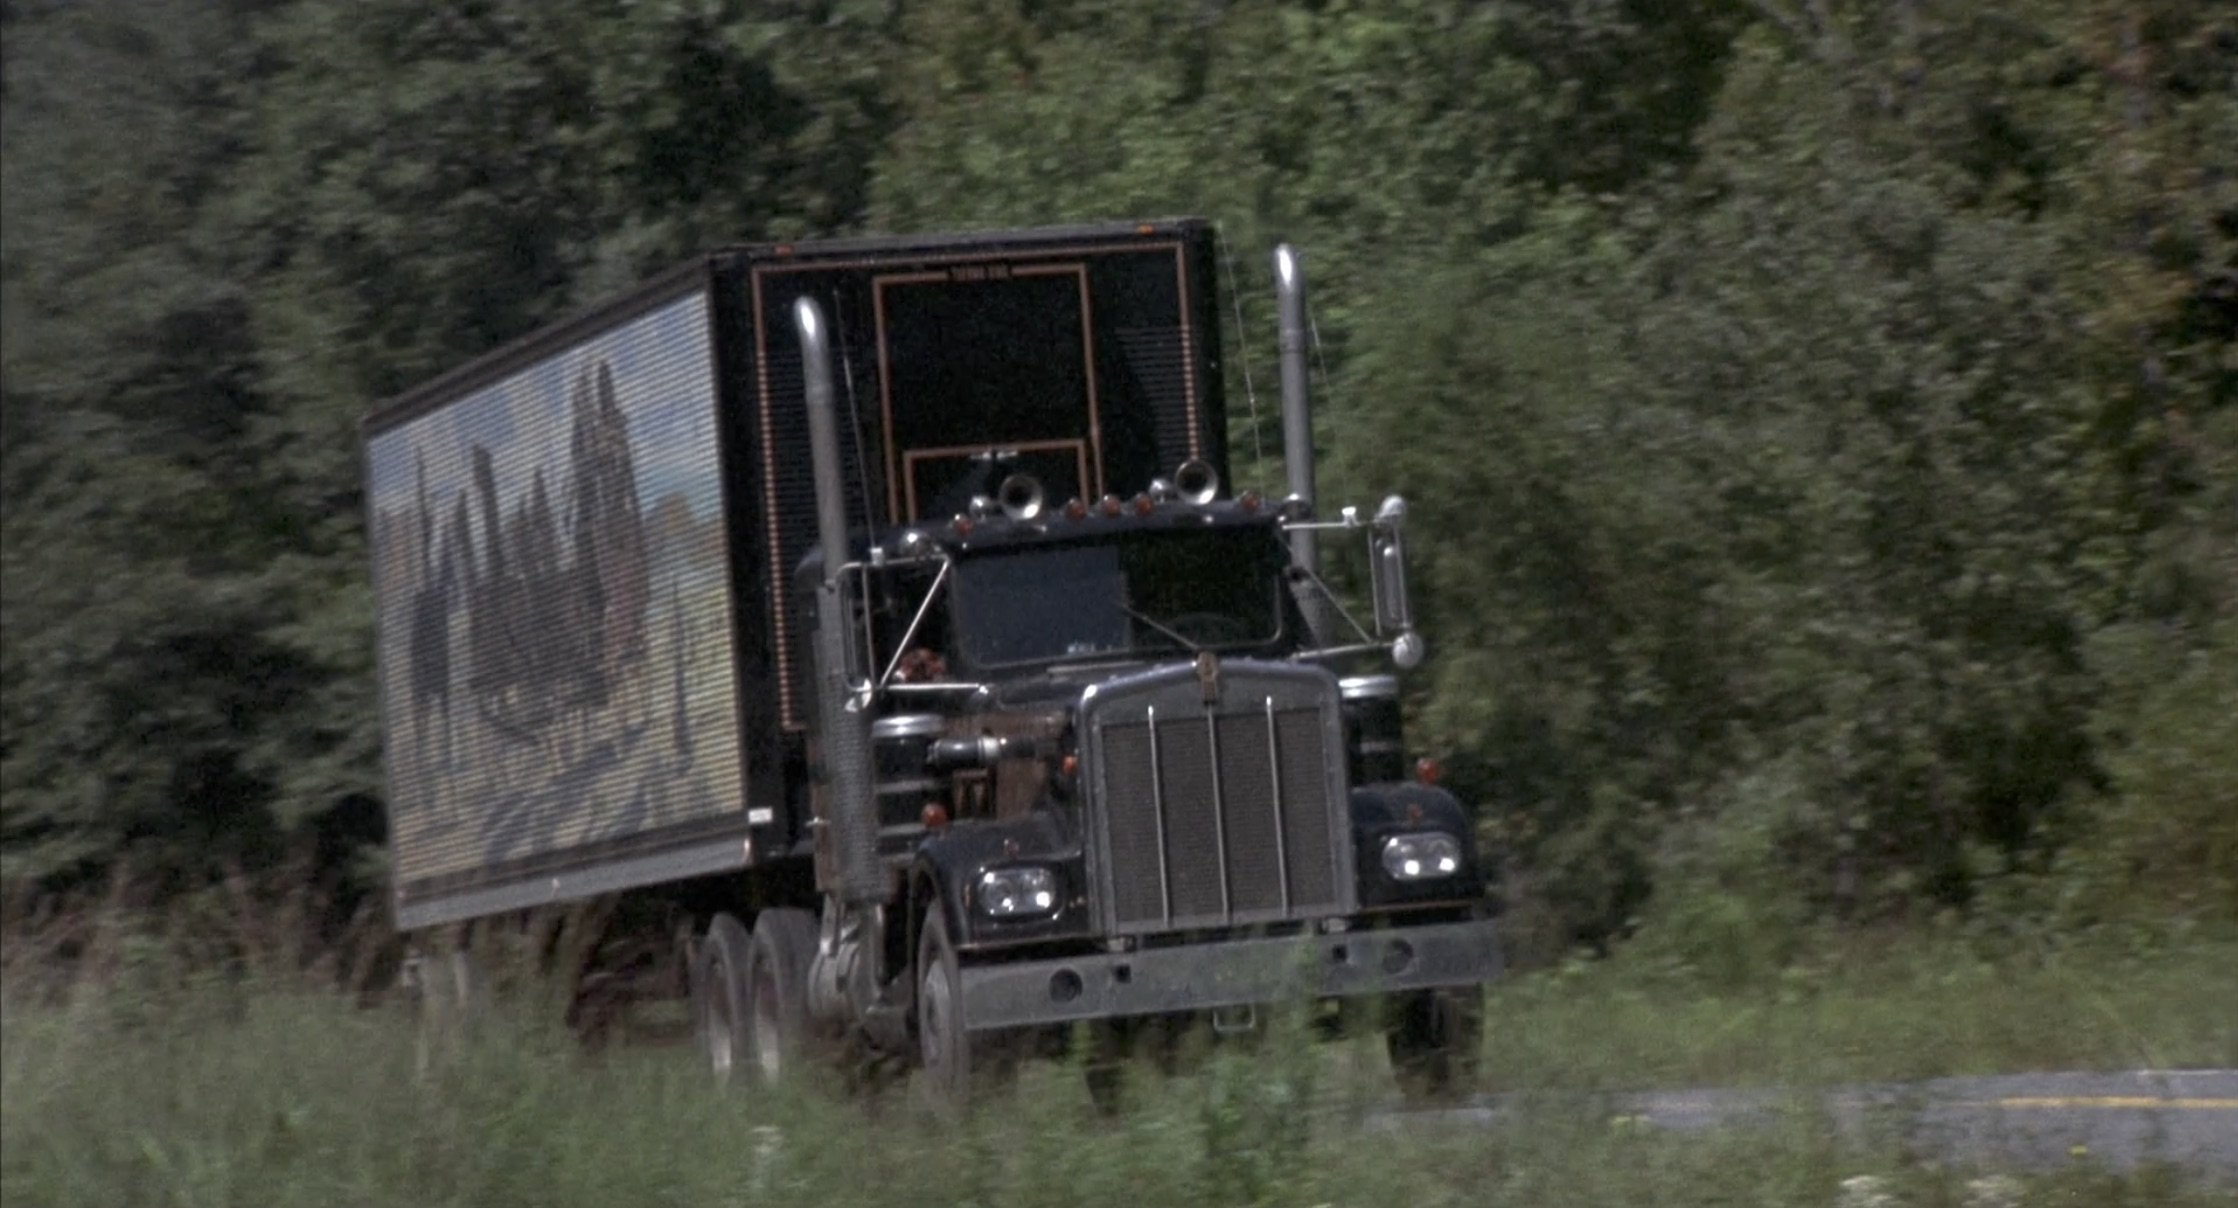 Smokey and the bandit semi truck on road